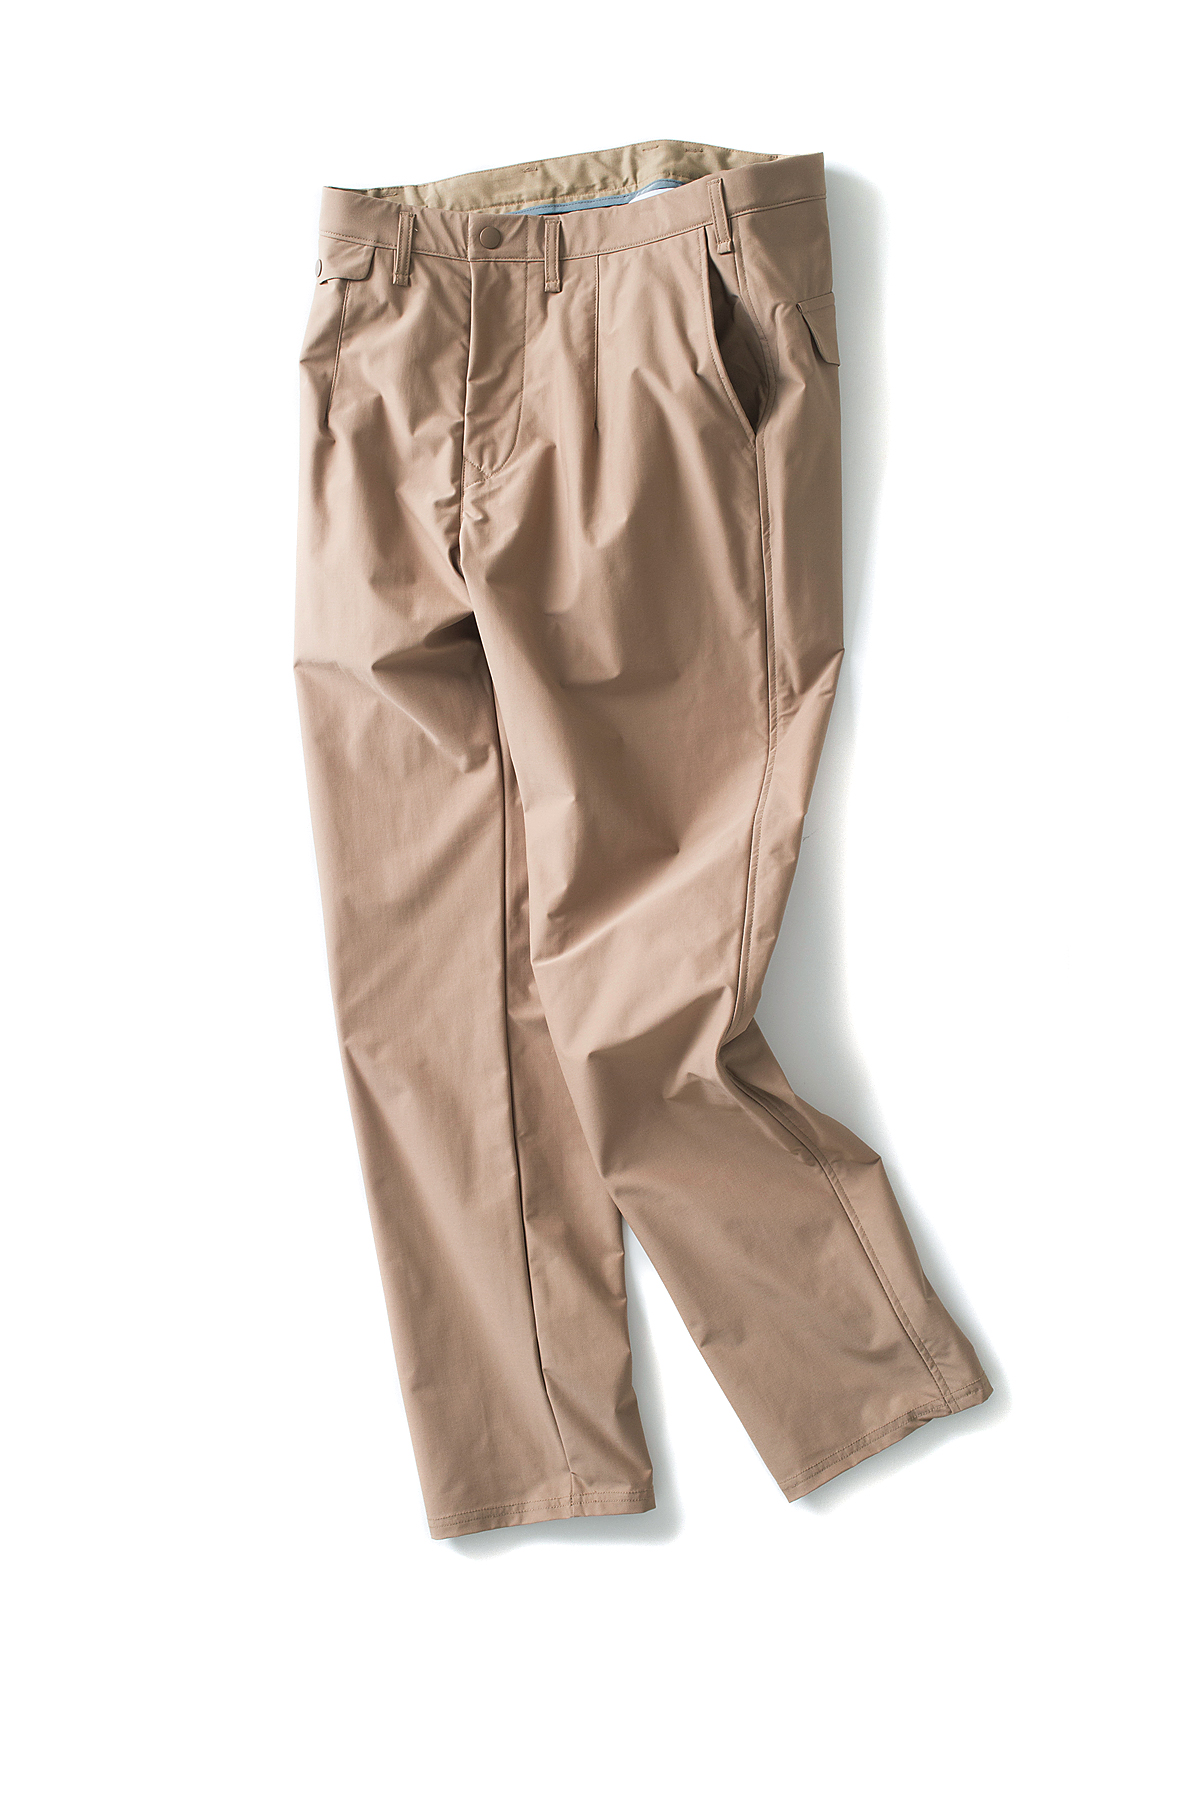 Curly : Singular Trousers (Beige)